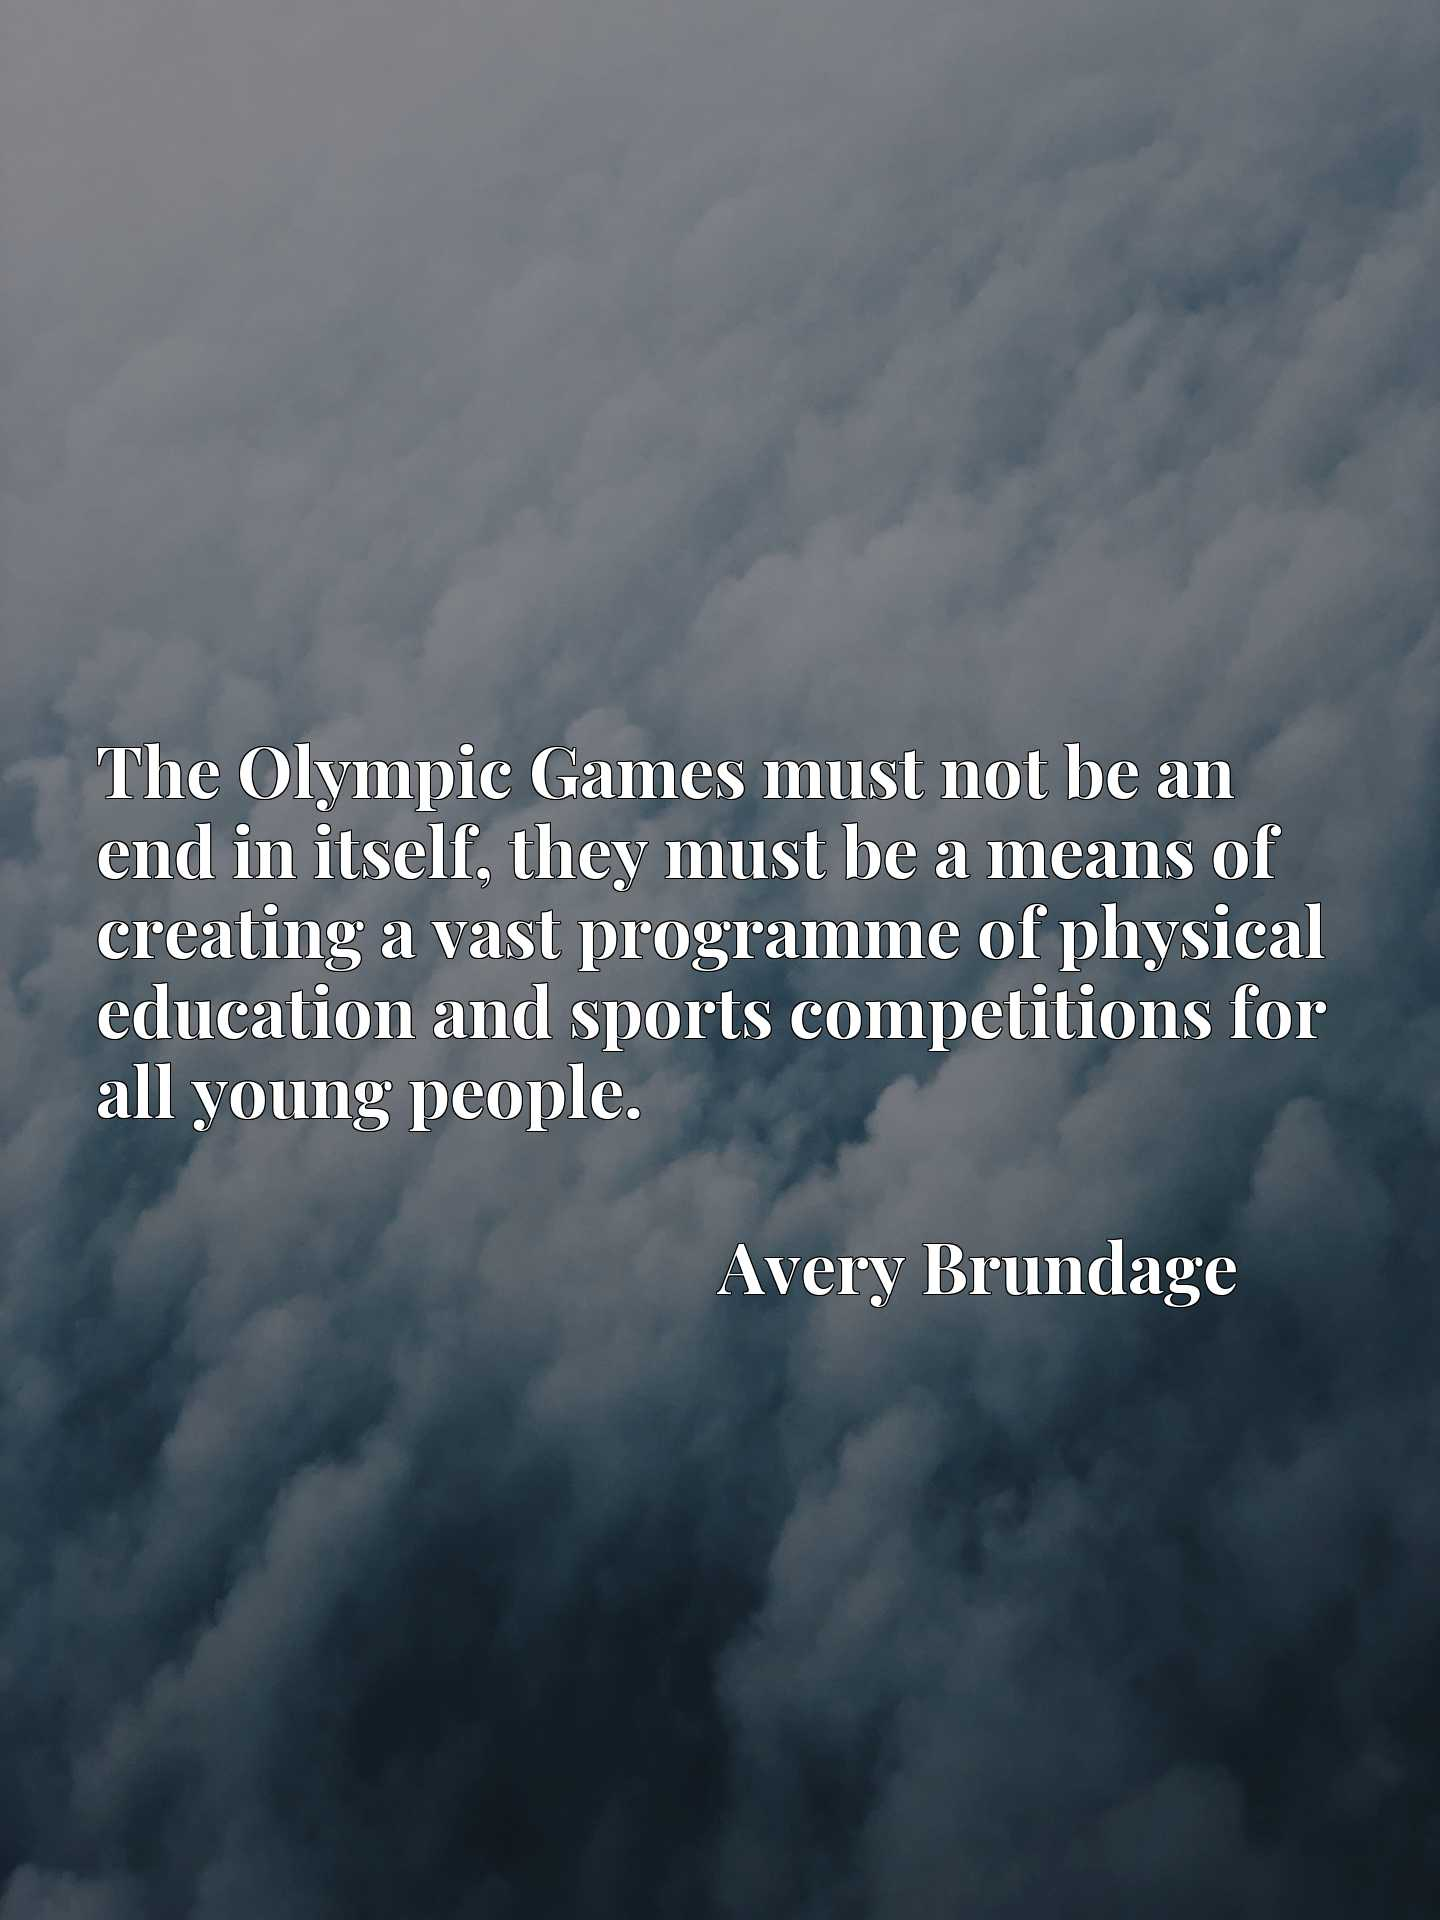 Quote Picture :The Olympic Games must not be an end in itself, they must be a means of creating a vast programme of physical education and sports competitions for all young people.